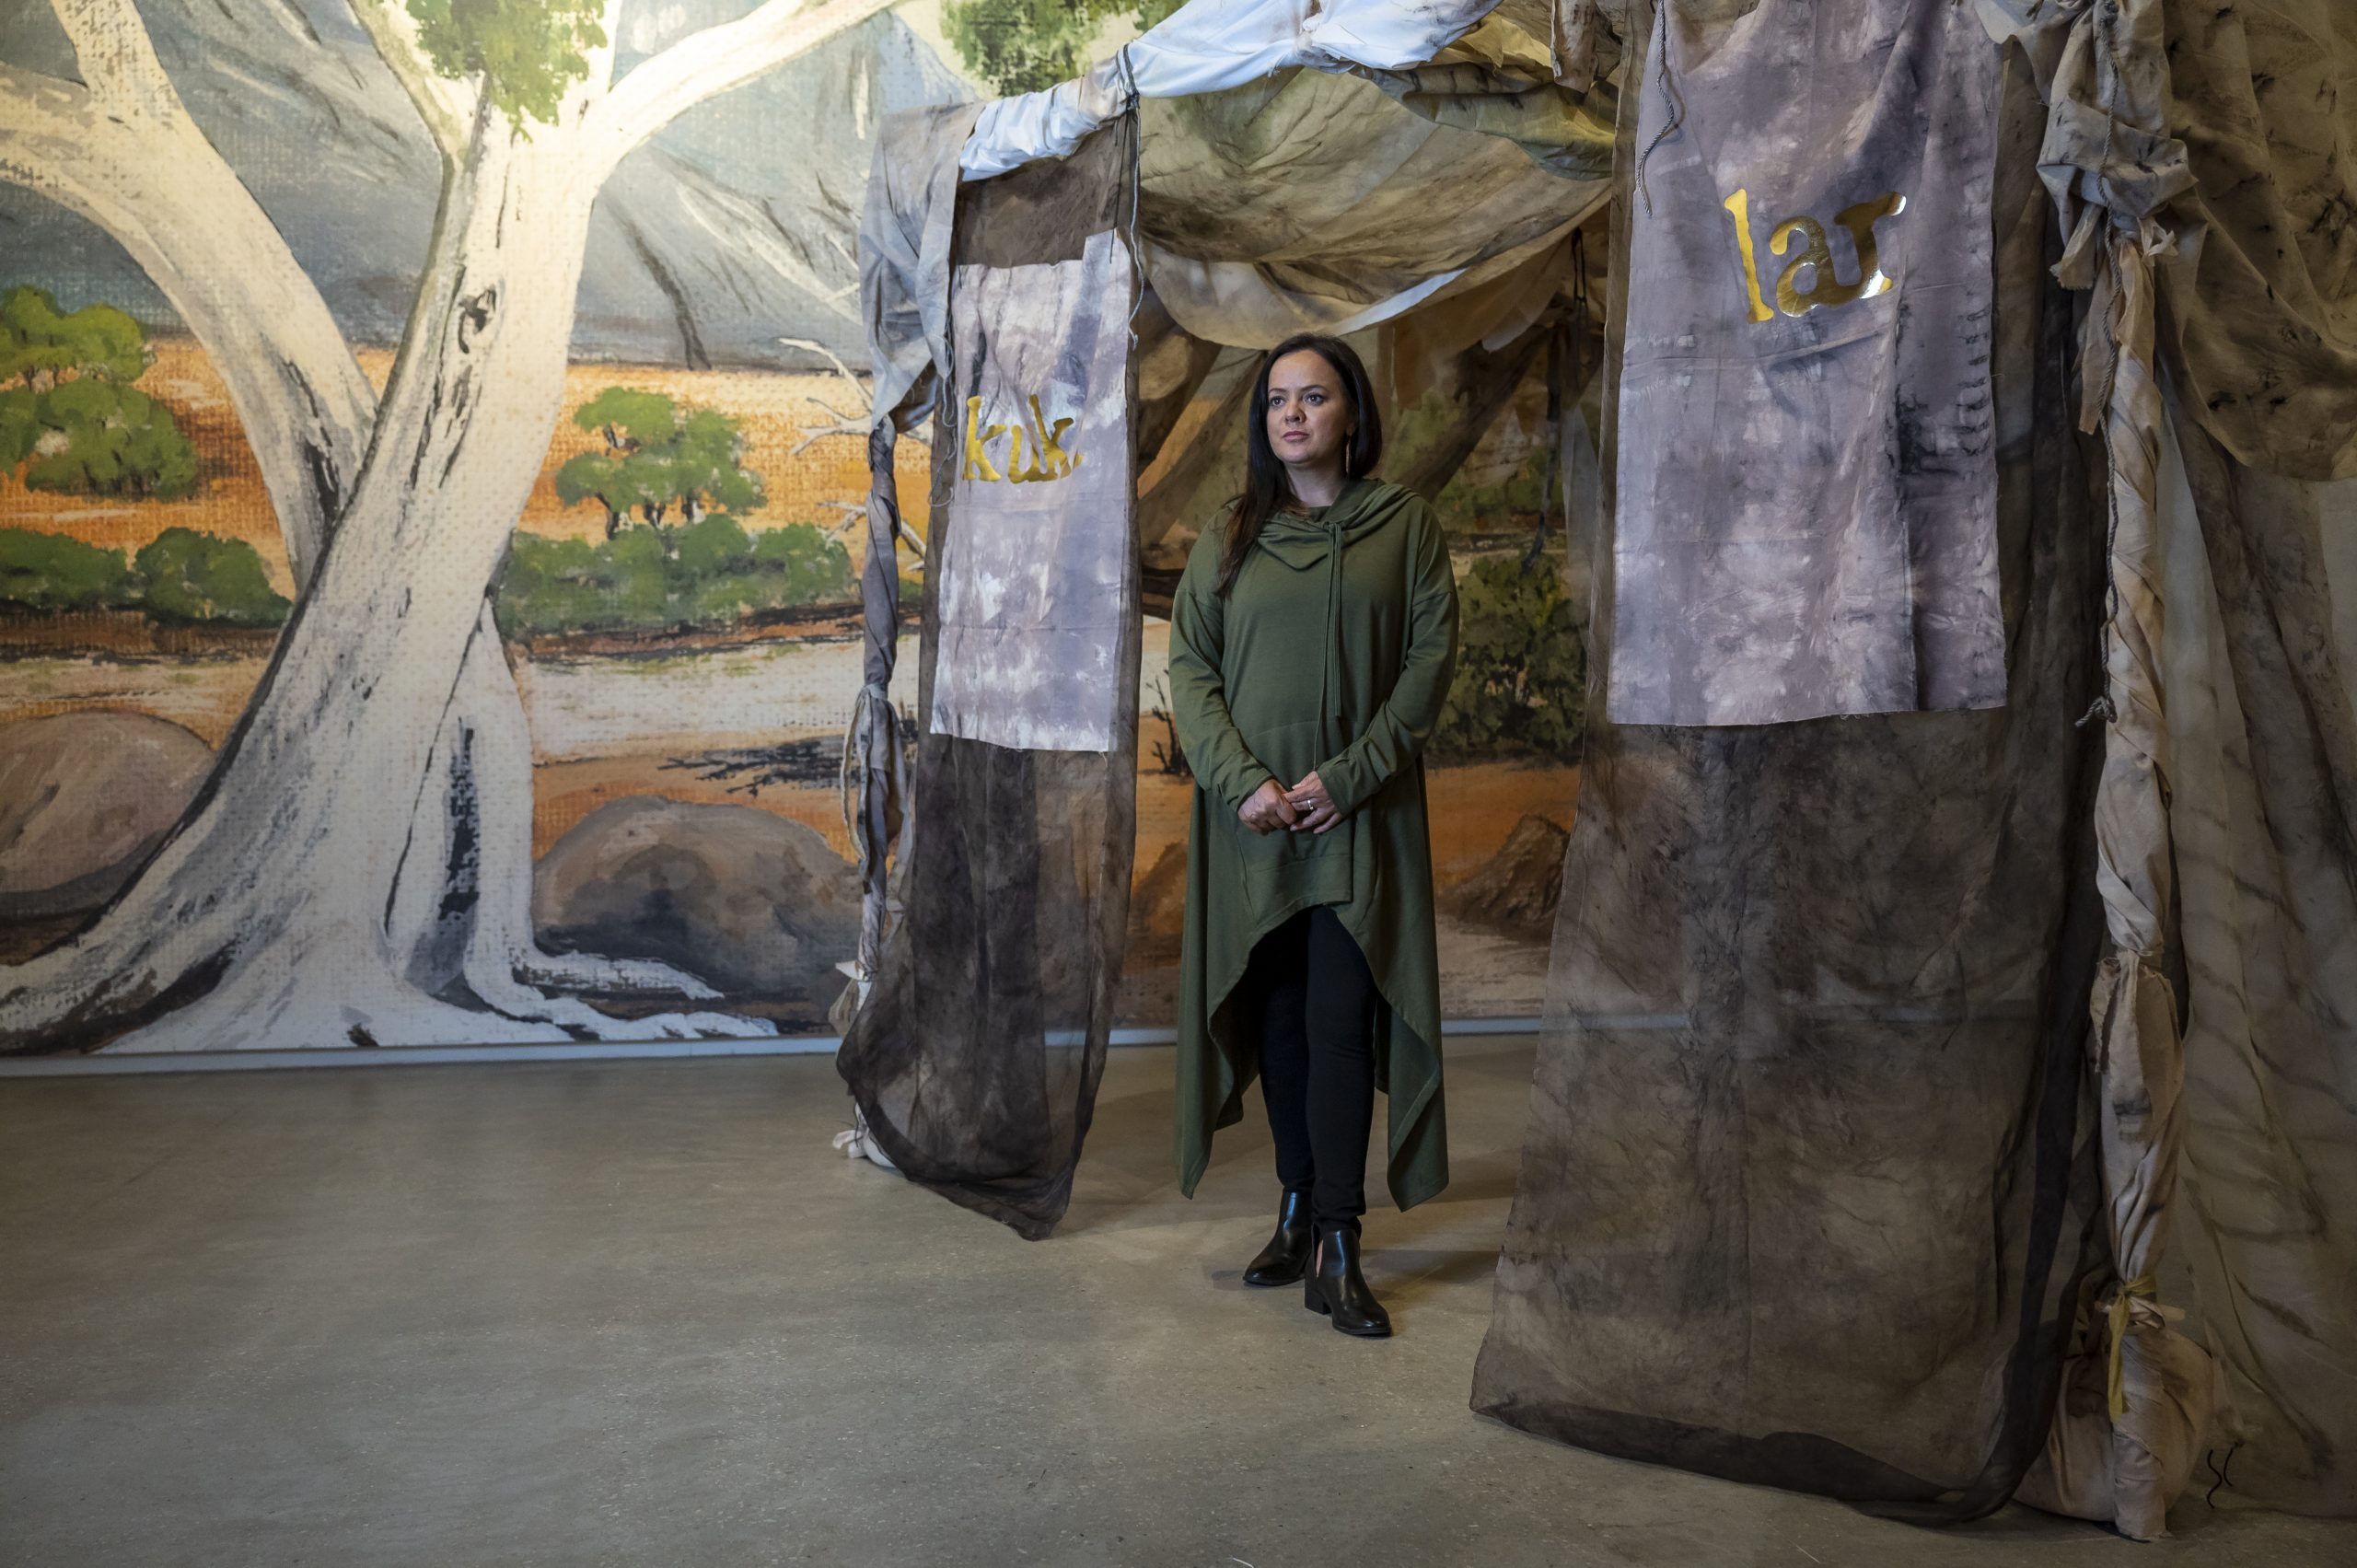 Stacie Piper stands at the entrance of Paola Balla's artwork